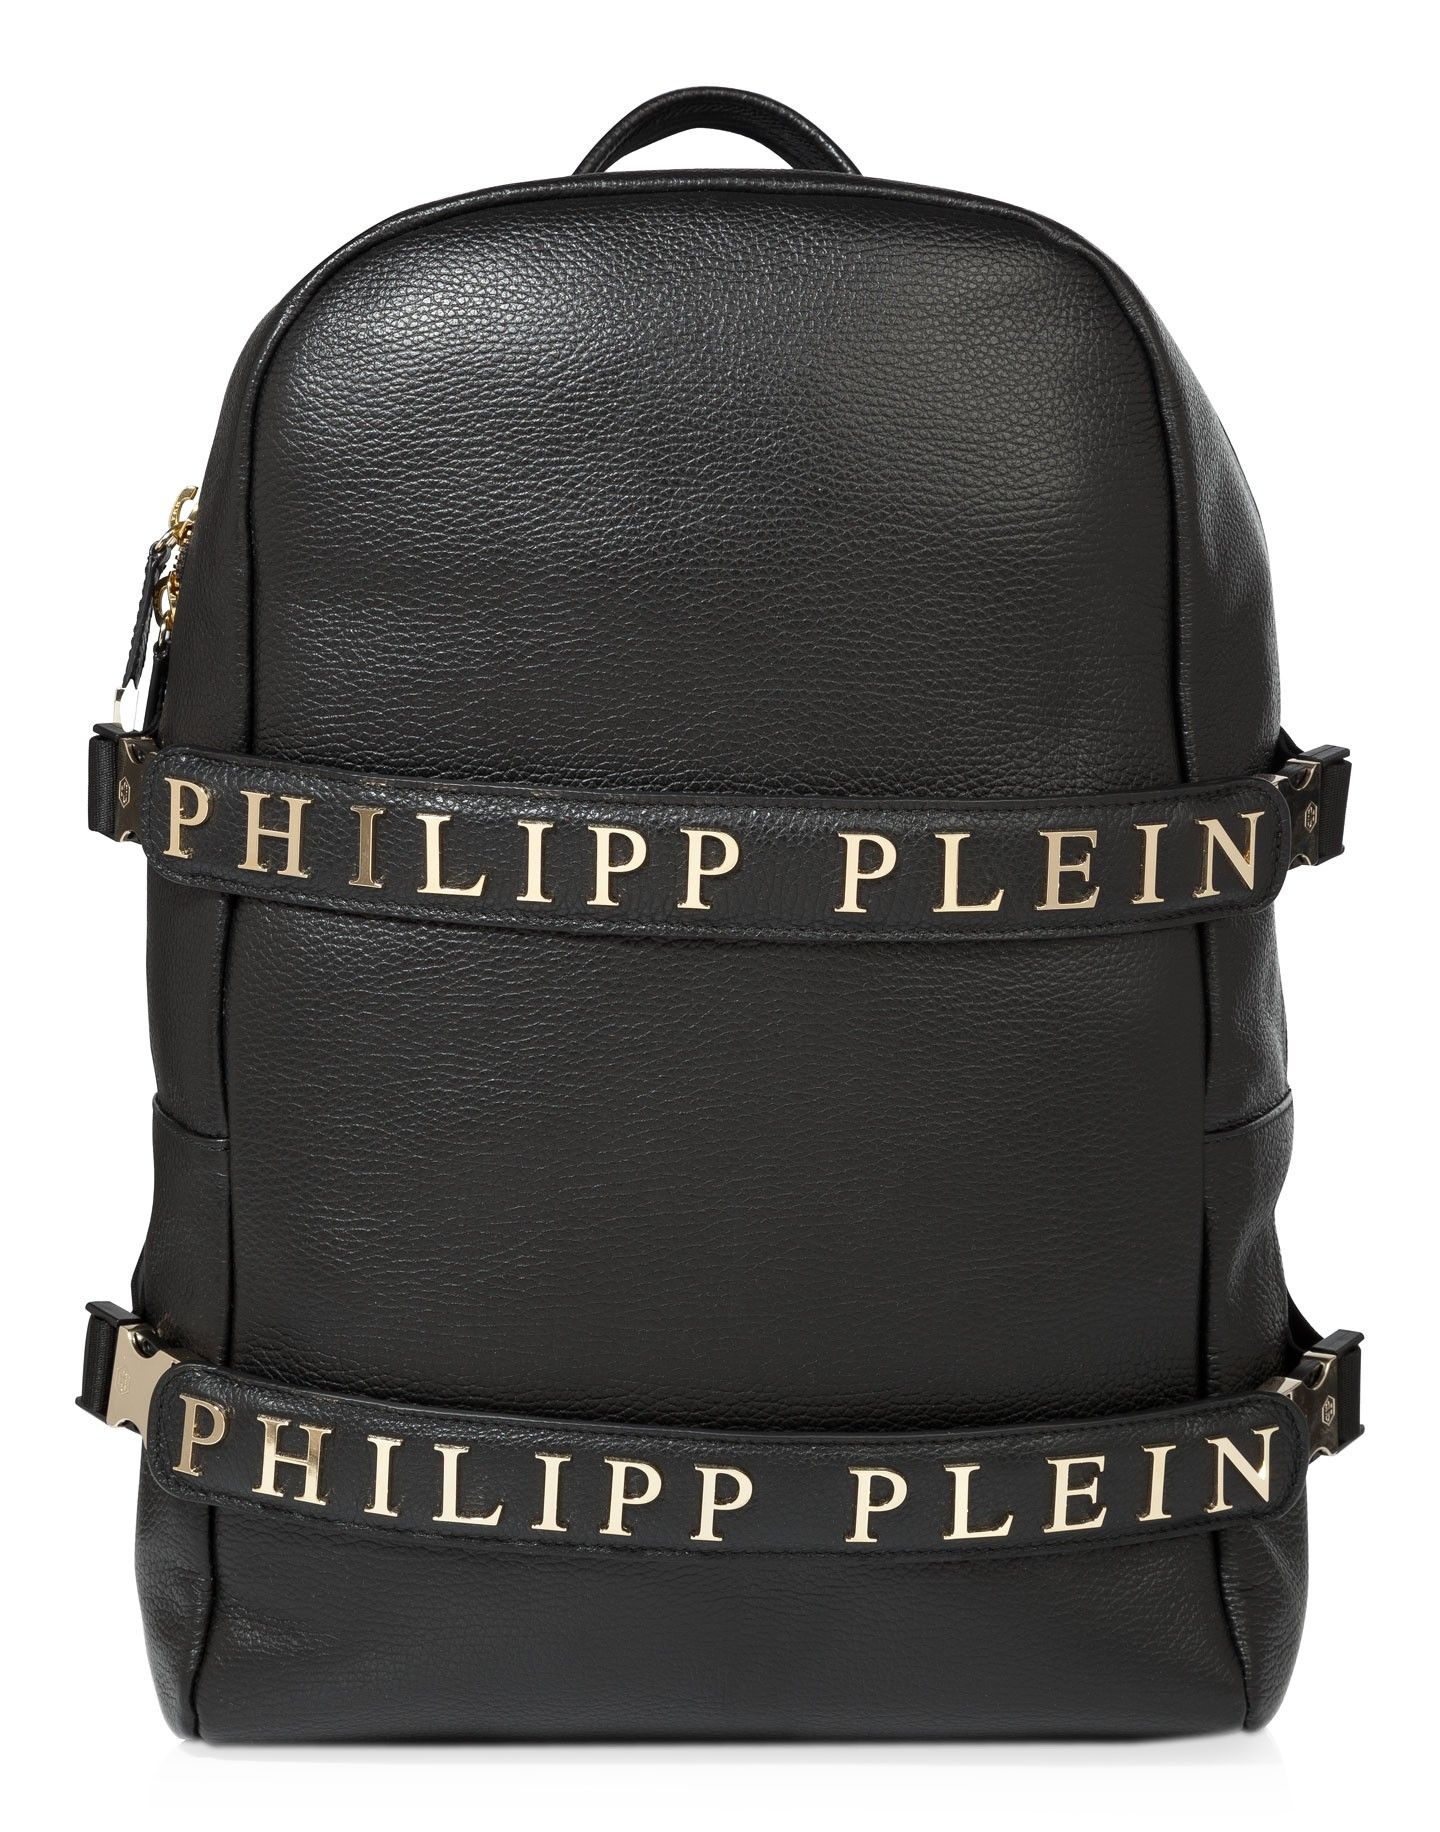 23cbc4c7be3 PHILIPP PLEIN BACKPACK